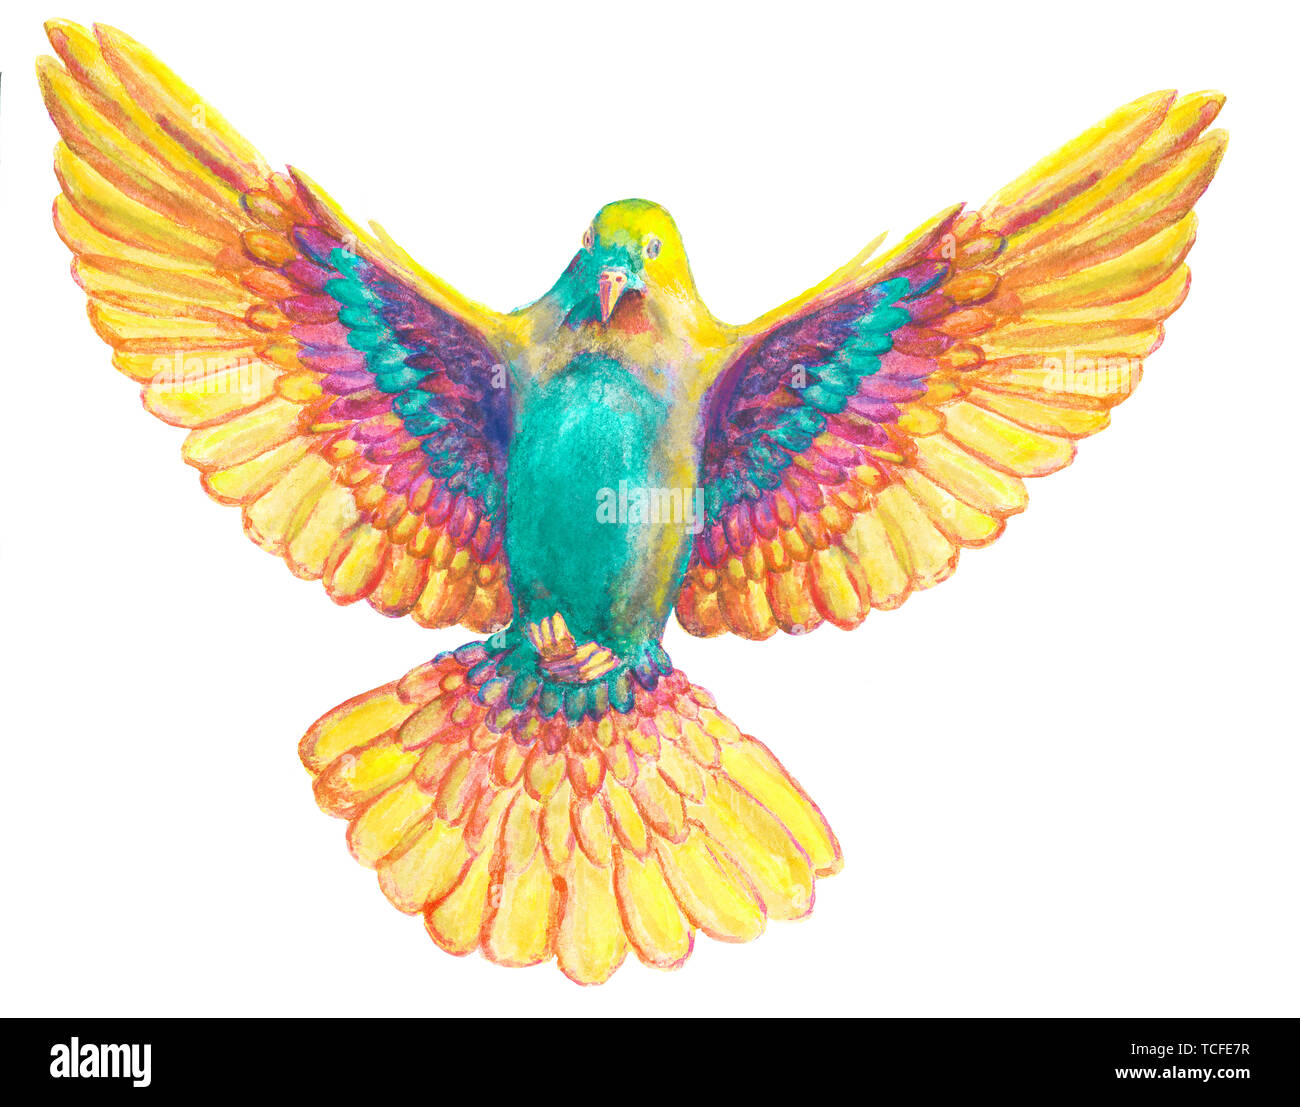 Watercolor and digital watercolor illustration of colorful, bird, pigeon in rainbow colors, symbol of the Holy Spirit, isolated on white background. Stock Photo